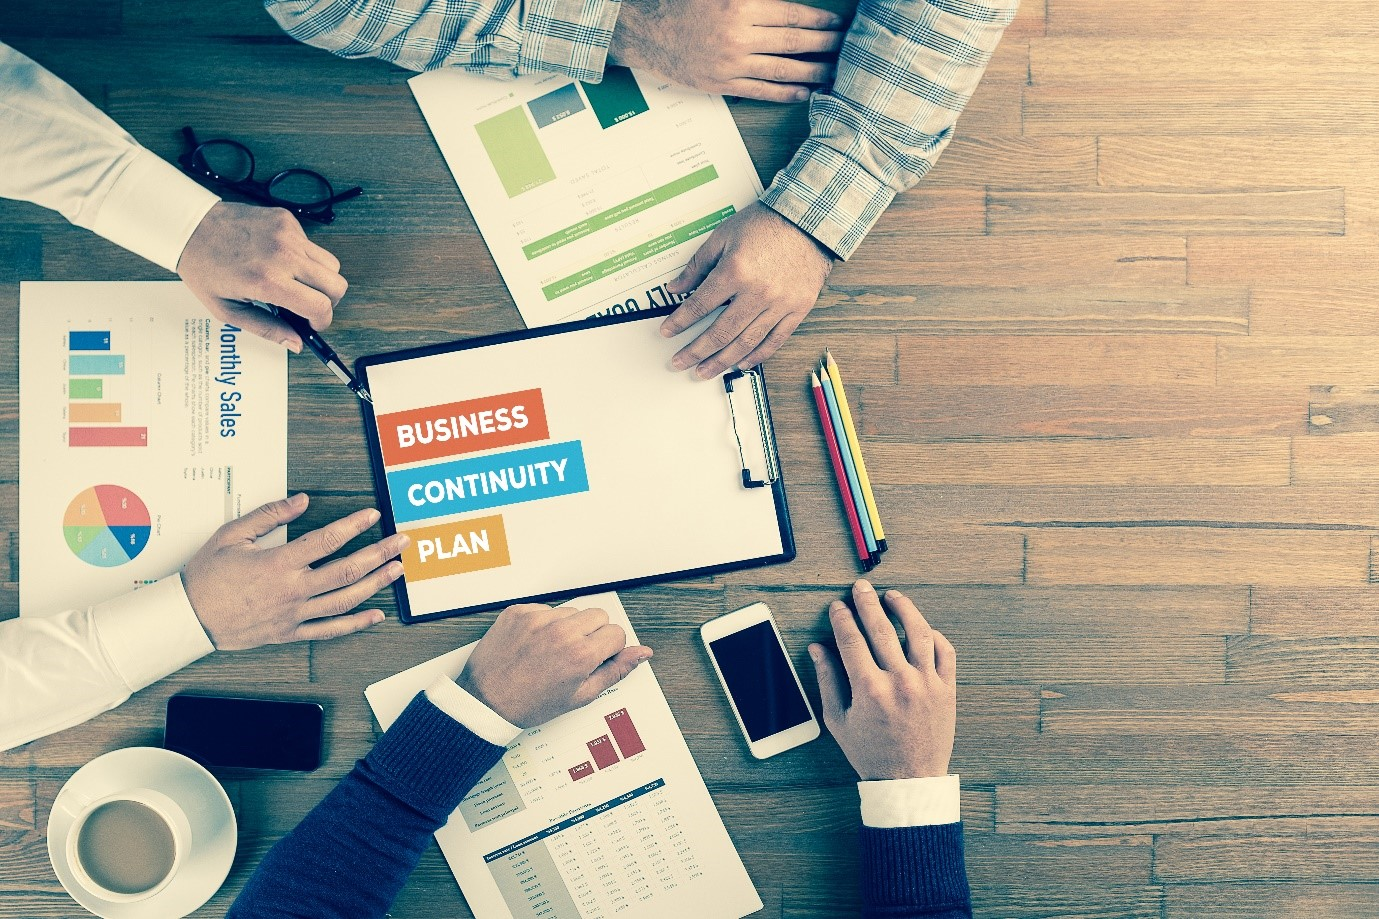 3 Reasons Why Transcosmos Has a Business Continuity Plan